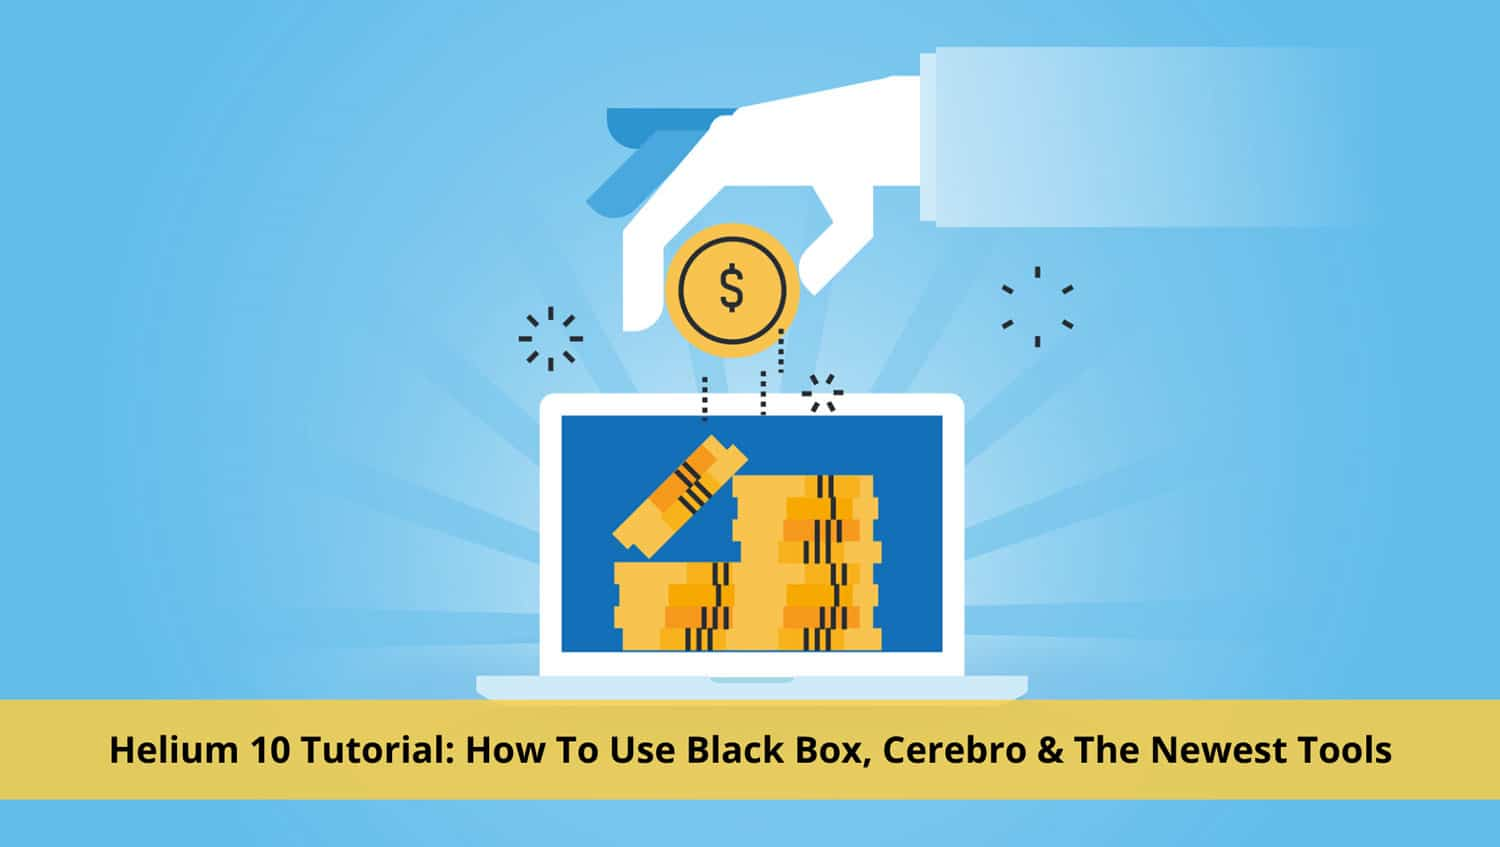 Helium 10 Tutorial: How To Use Black Box, Cerebro & The Newest Tools